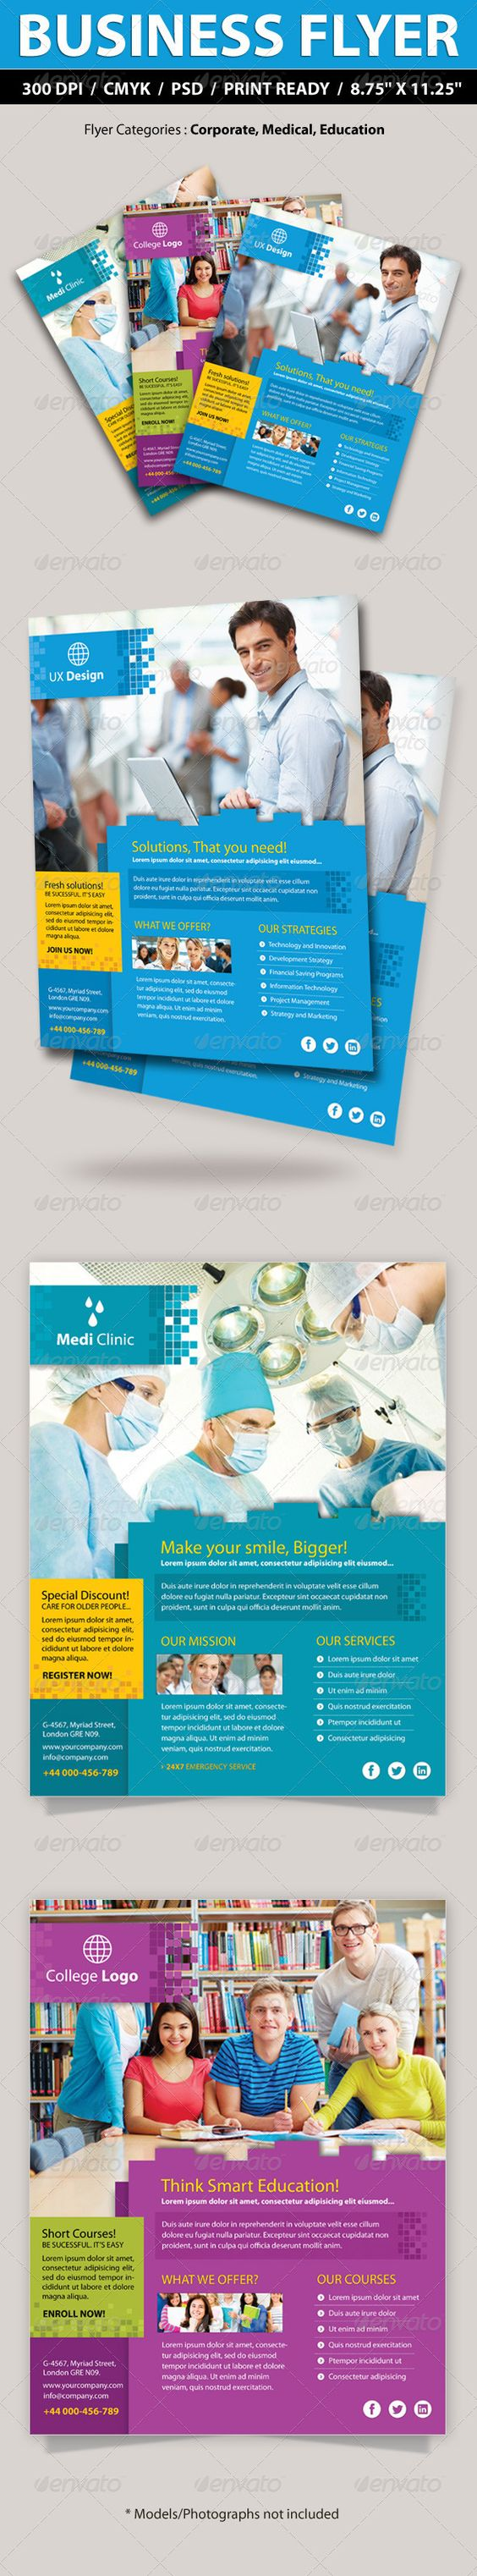 """Corporate, College, Medical Business Promotion Fly #GraphicRiver Corporate, College, Medical Business Promotion Flyer —-—-—- Specifications: 1) Dimensions: Size 8.5""""x11"""" (8.75×11.25 with bleeds) 2) Resolution: 300 dpi CMYK / ready for print 3) Editable fonts/text 4) Layered and Organized in Folders 5) Quick Photo Replacement using Smart Objects 6) Help file included 7) 3 Color Options included suitable for multiple categories i.e. Medical, Education, Corporate —-—-—— Free Fonts used: Myriad…"""